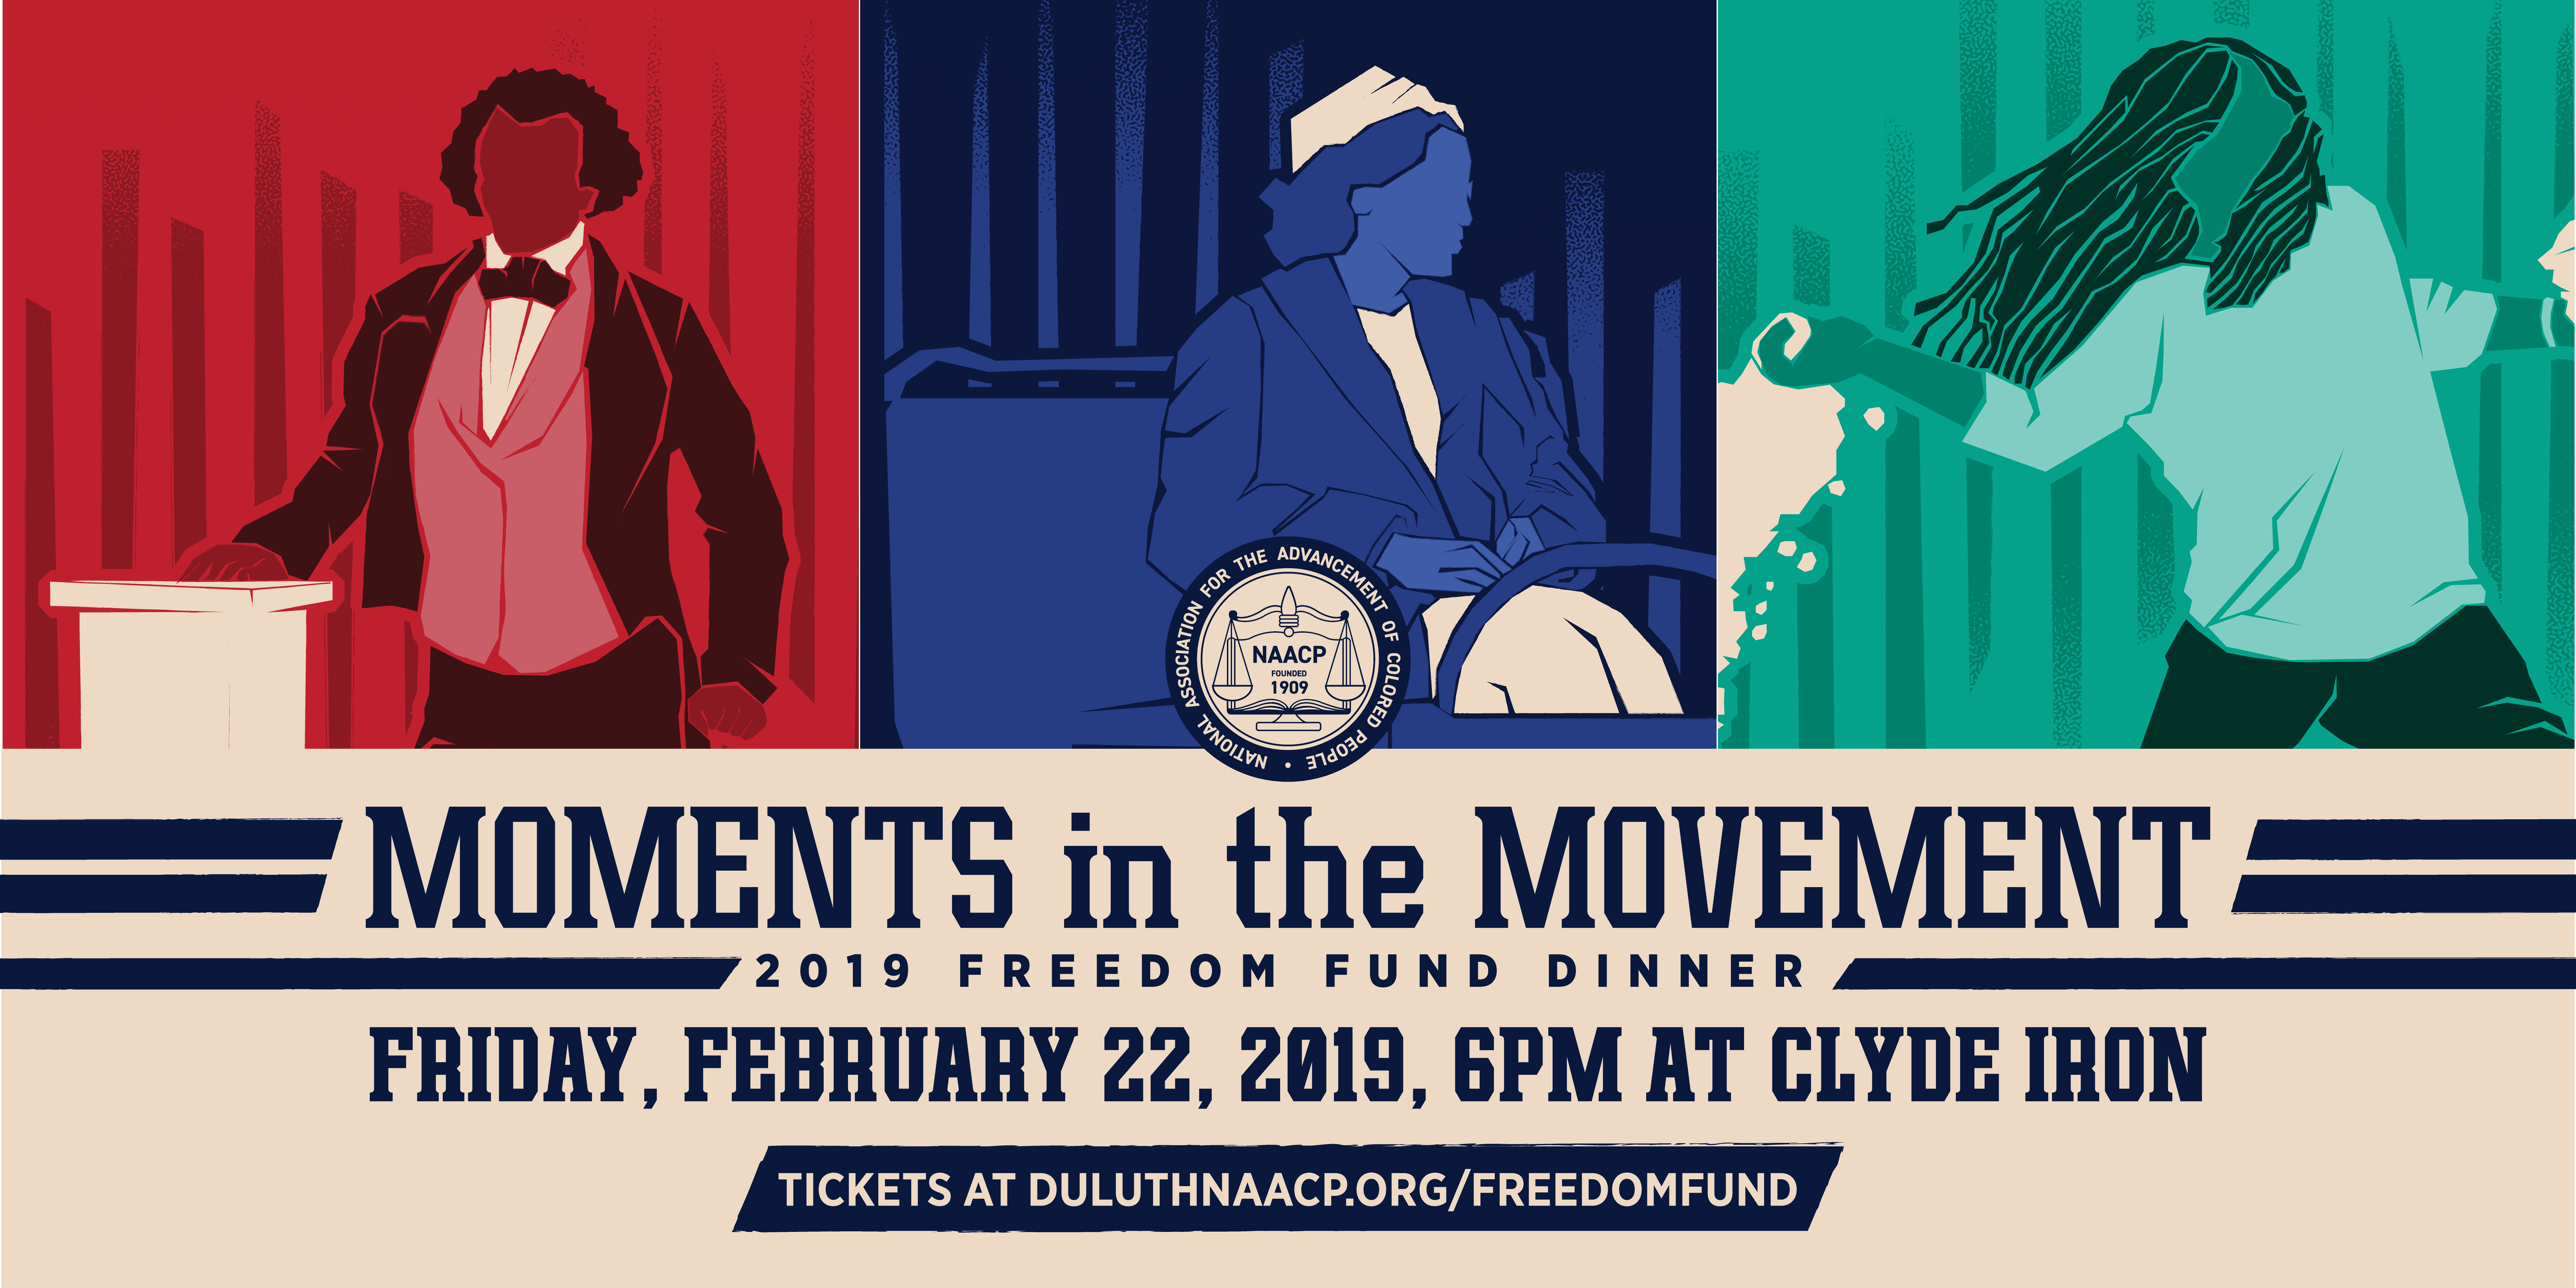 Moments in the Movement-2019 Freedom Fund Dinner